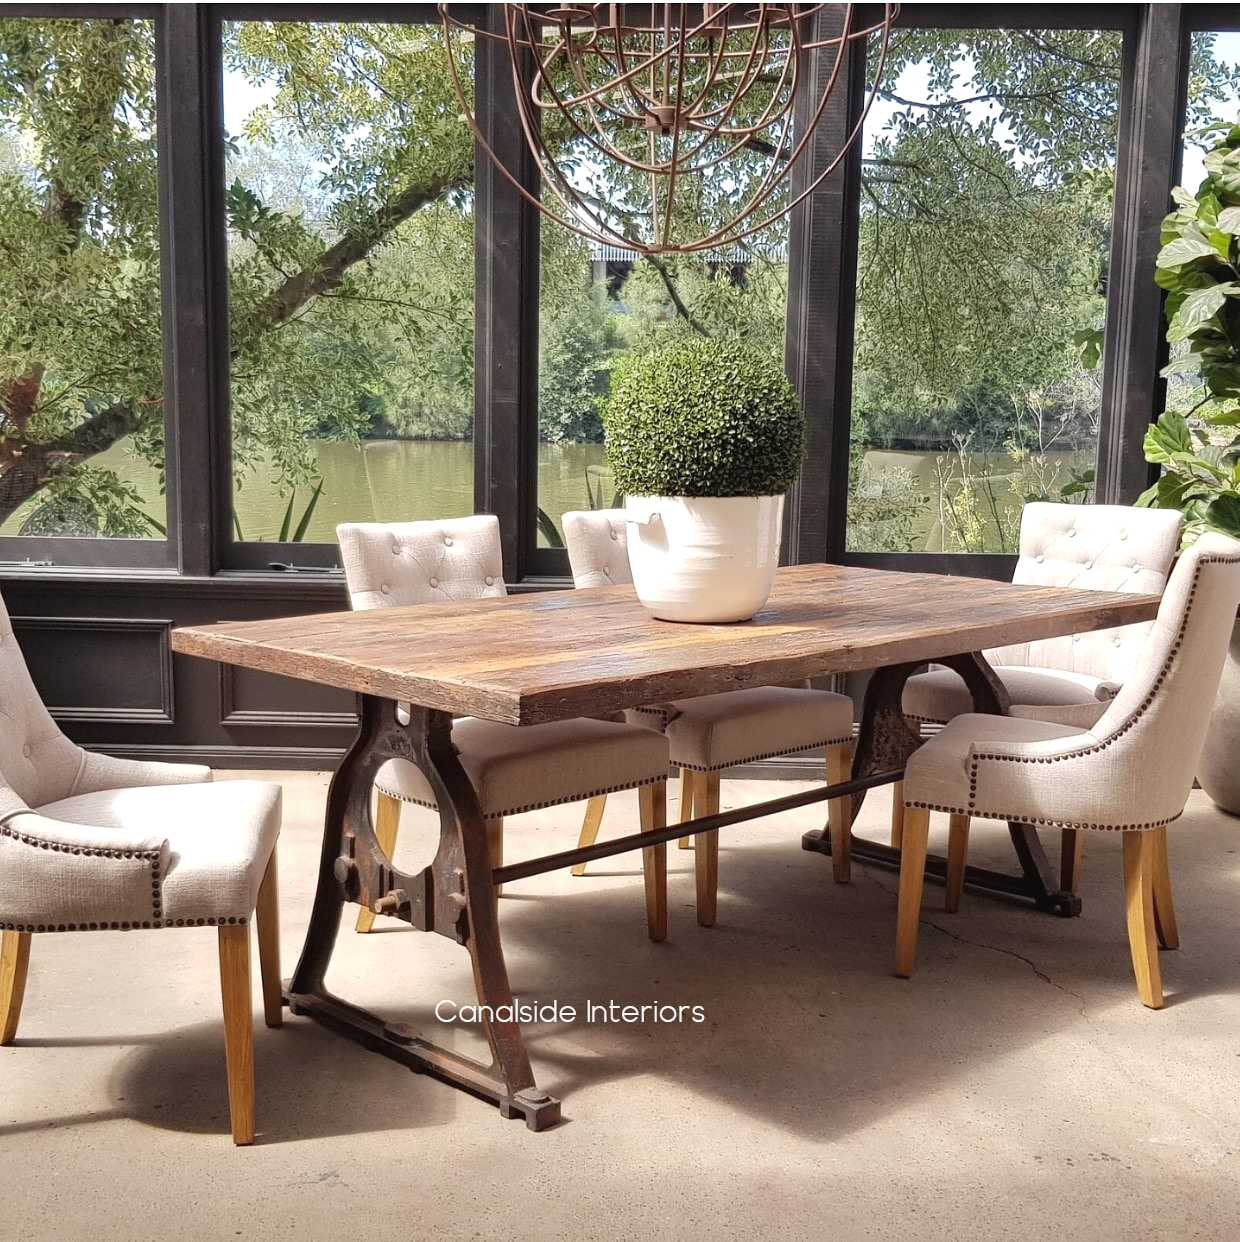 Protractor Omega Dining Table with reclaimed wood top Canalside Interiors